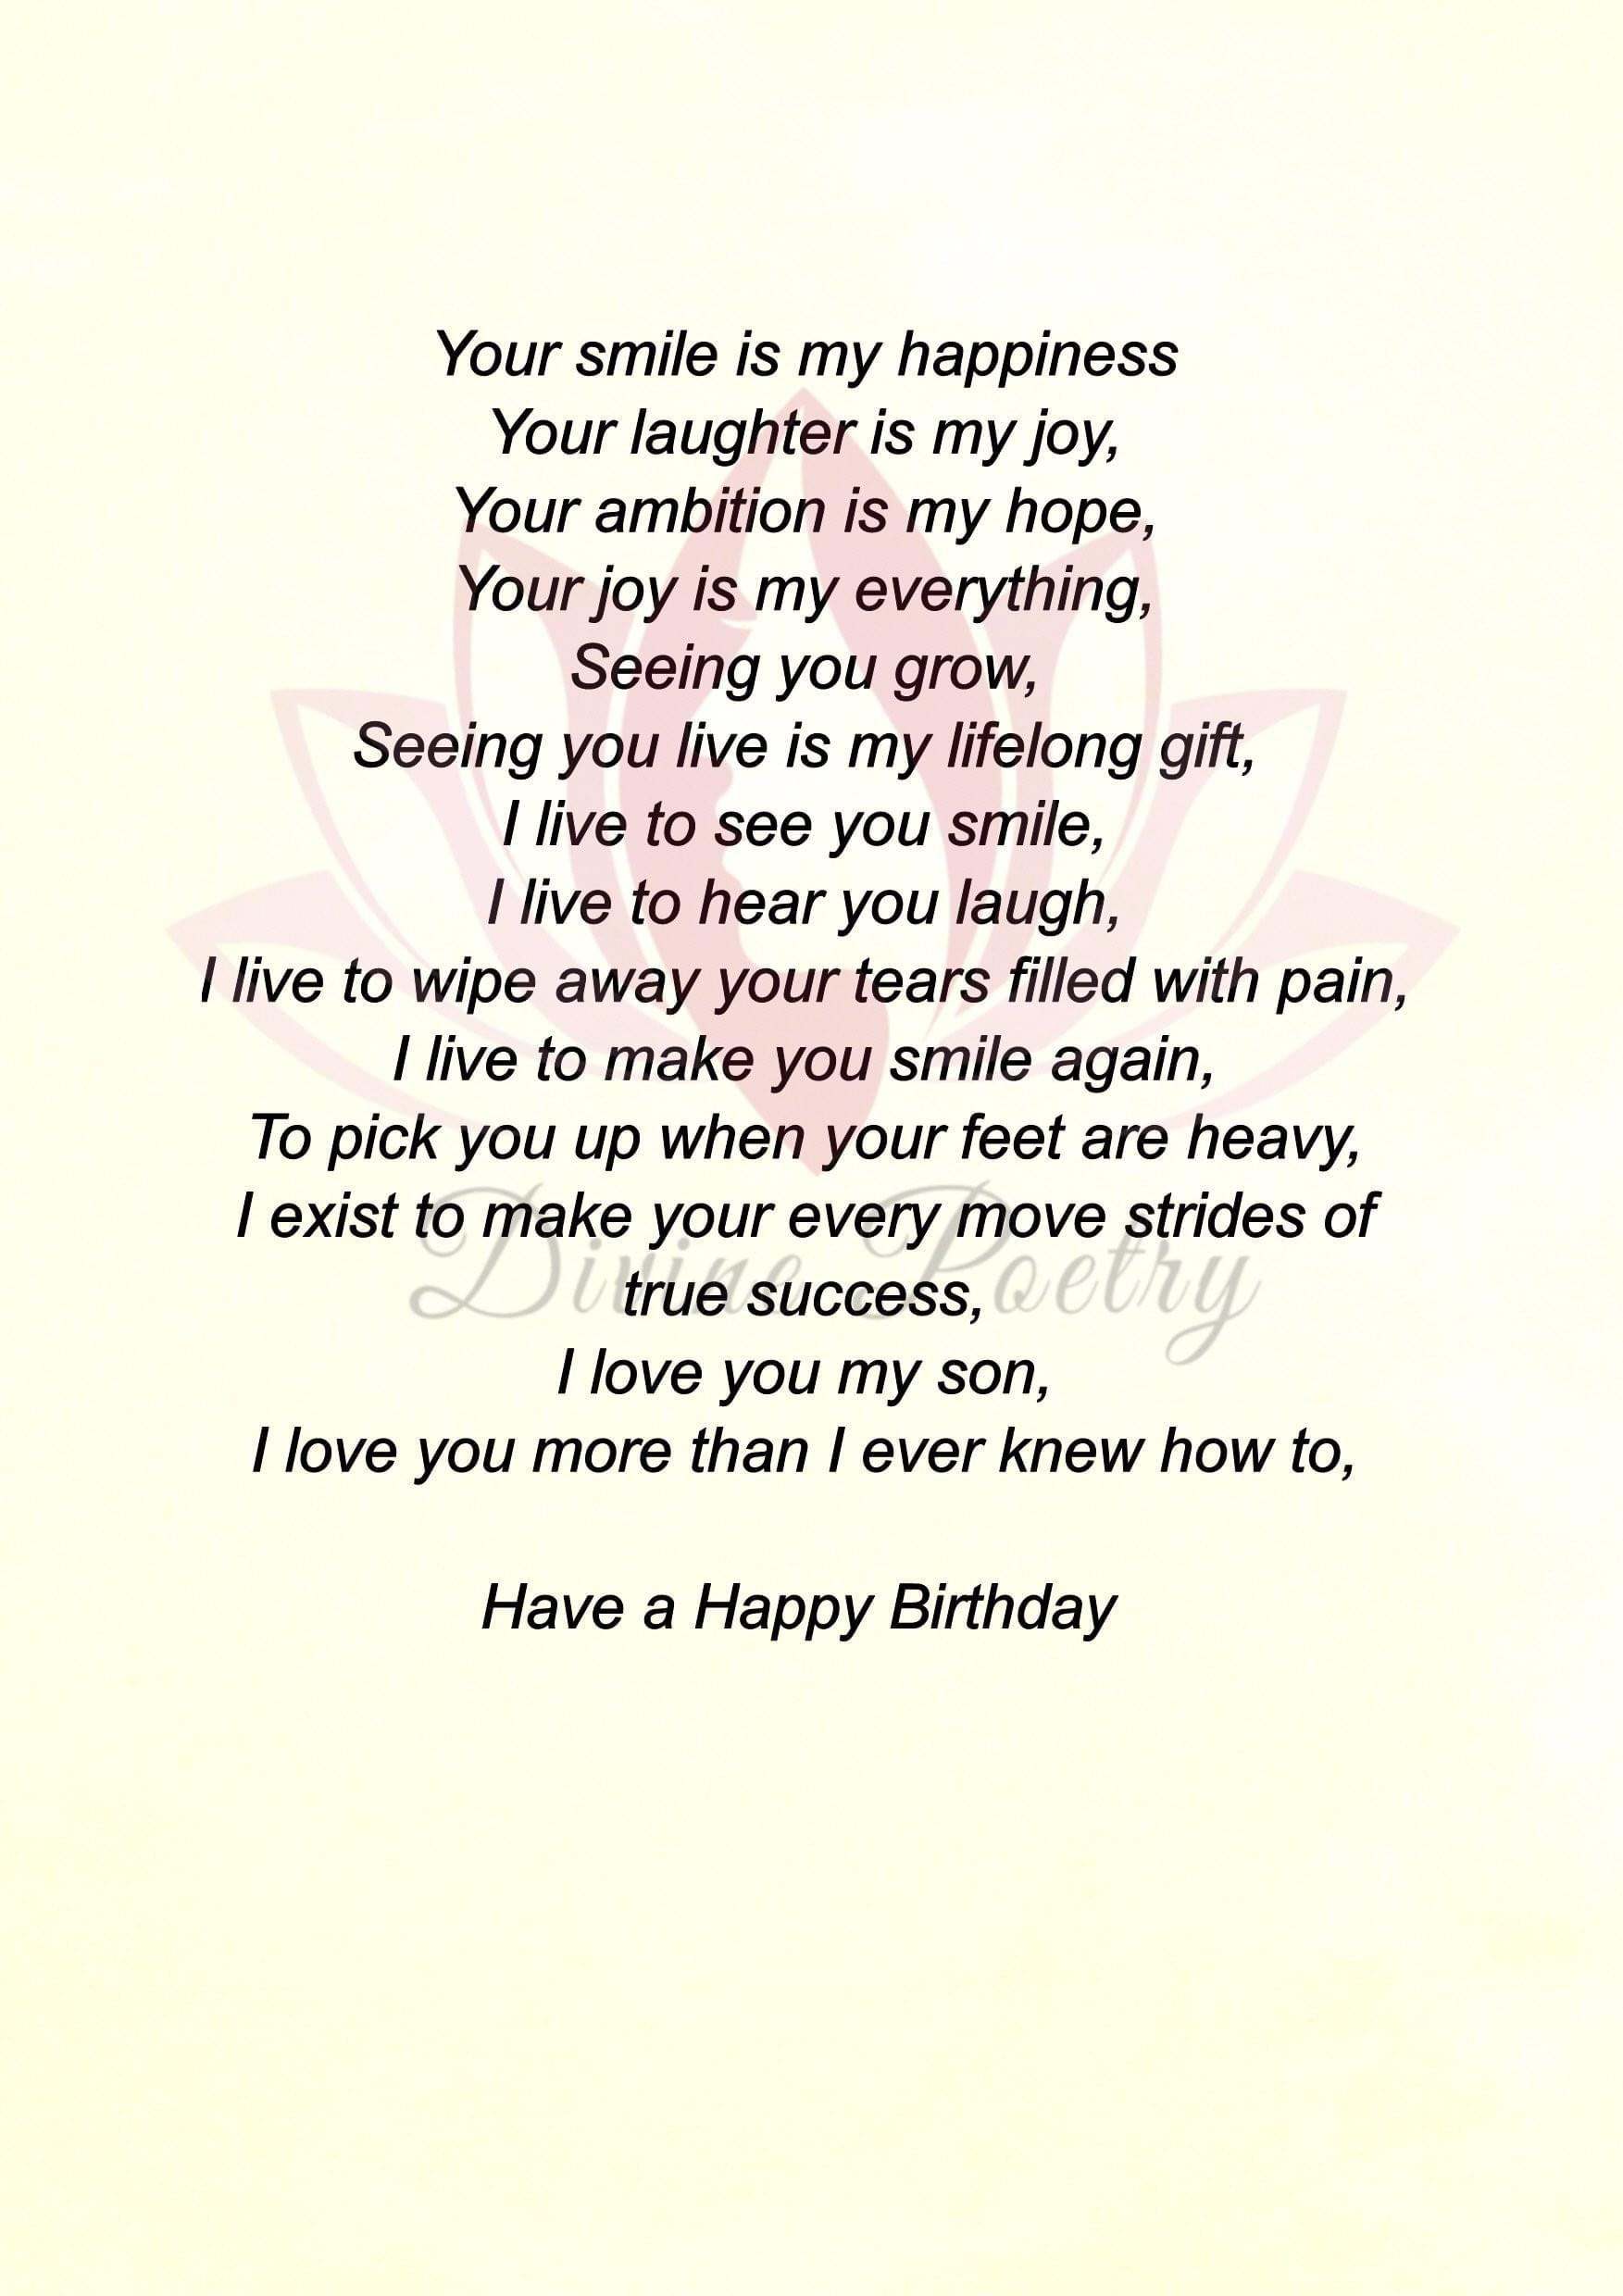 To My Great Son - Divine Poetry